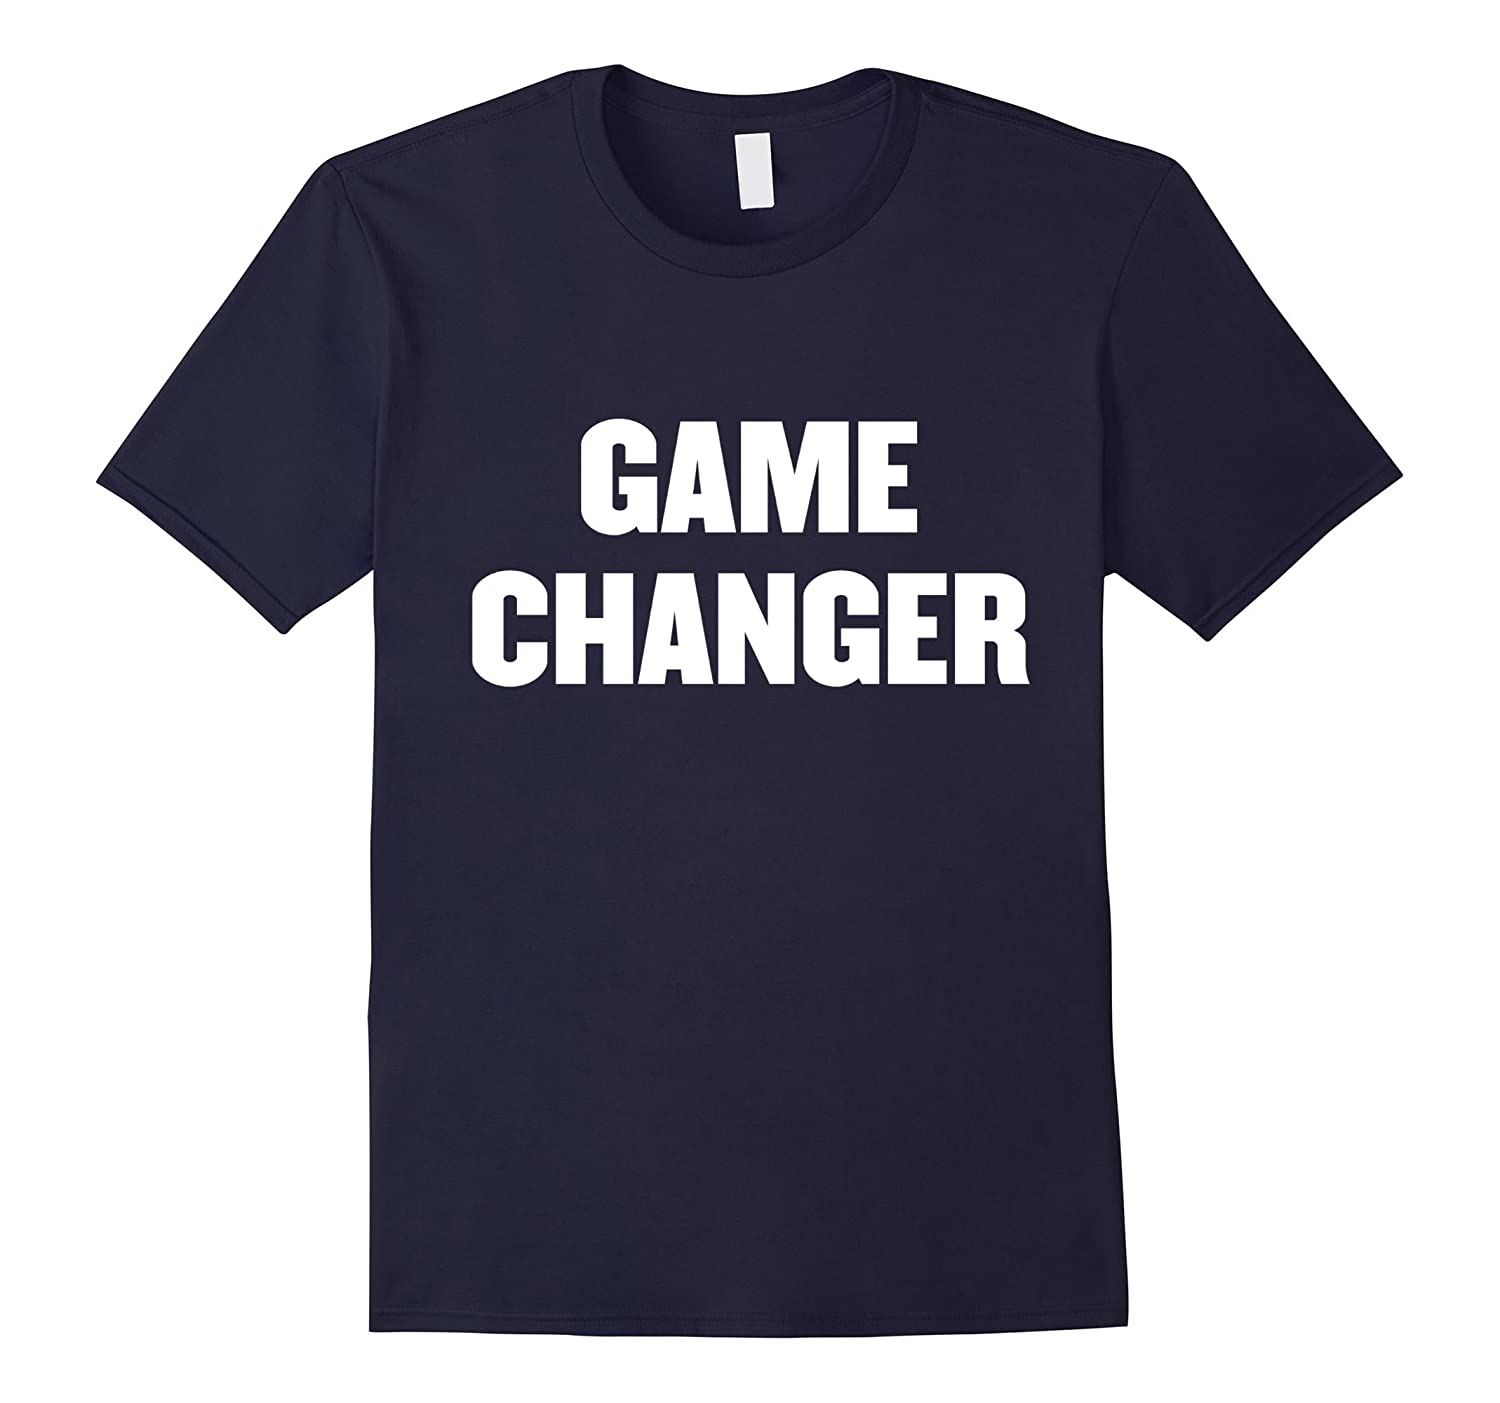 Game changer t shirt-TJ